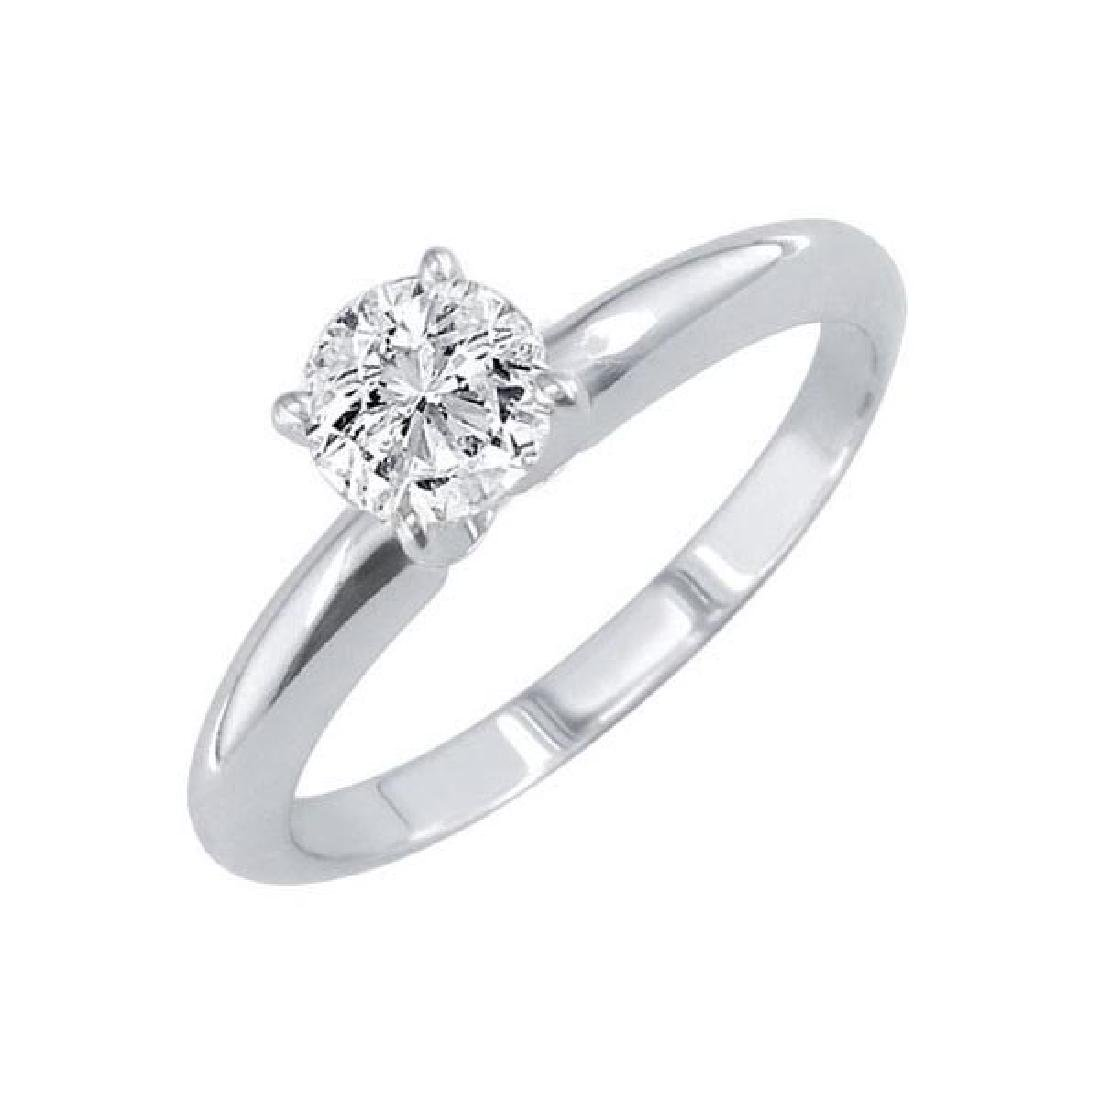 Certified 1.24 CTW Round Diamond Solitaire 14k Ring G/S